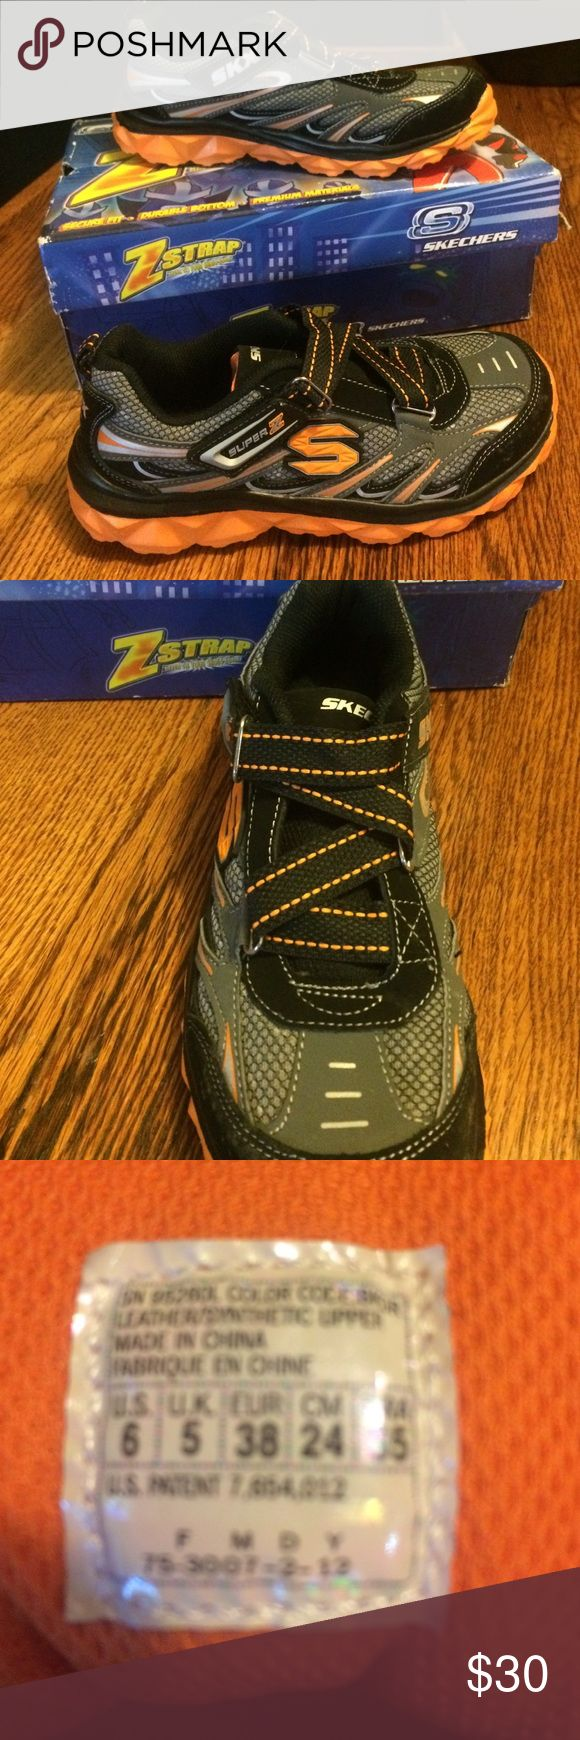 NEW! Skechers Z Strap. Boys. Size 6. Never worn. Still in the box. Box is a bit worn. Will ship in box. Skechers Shoes Sneakers